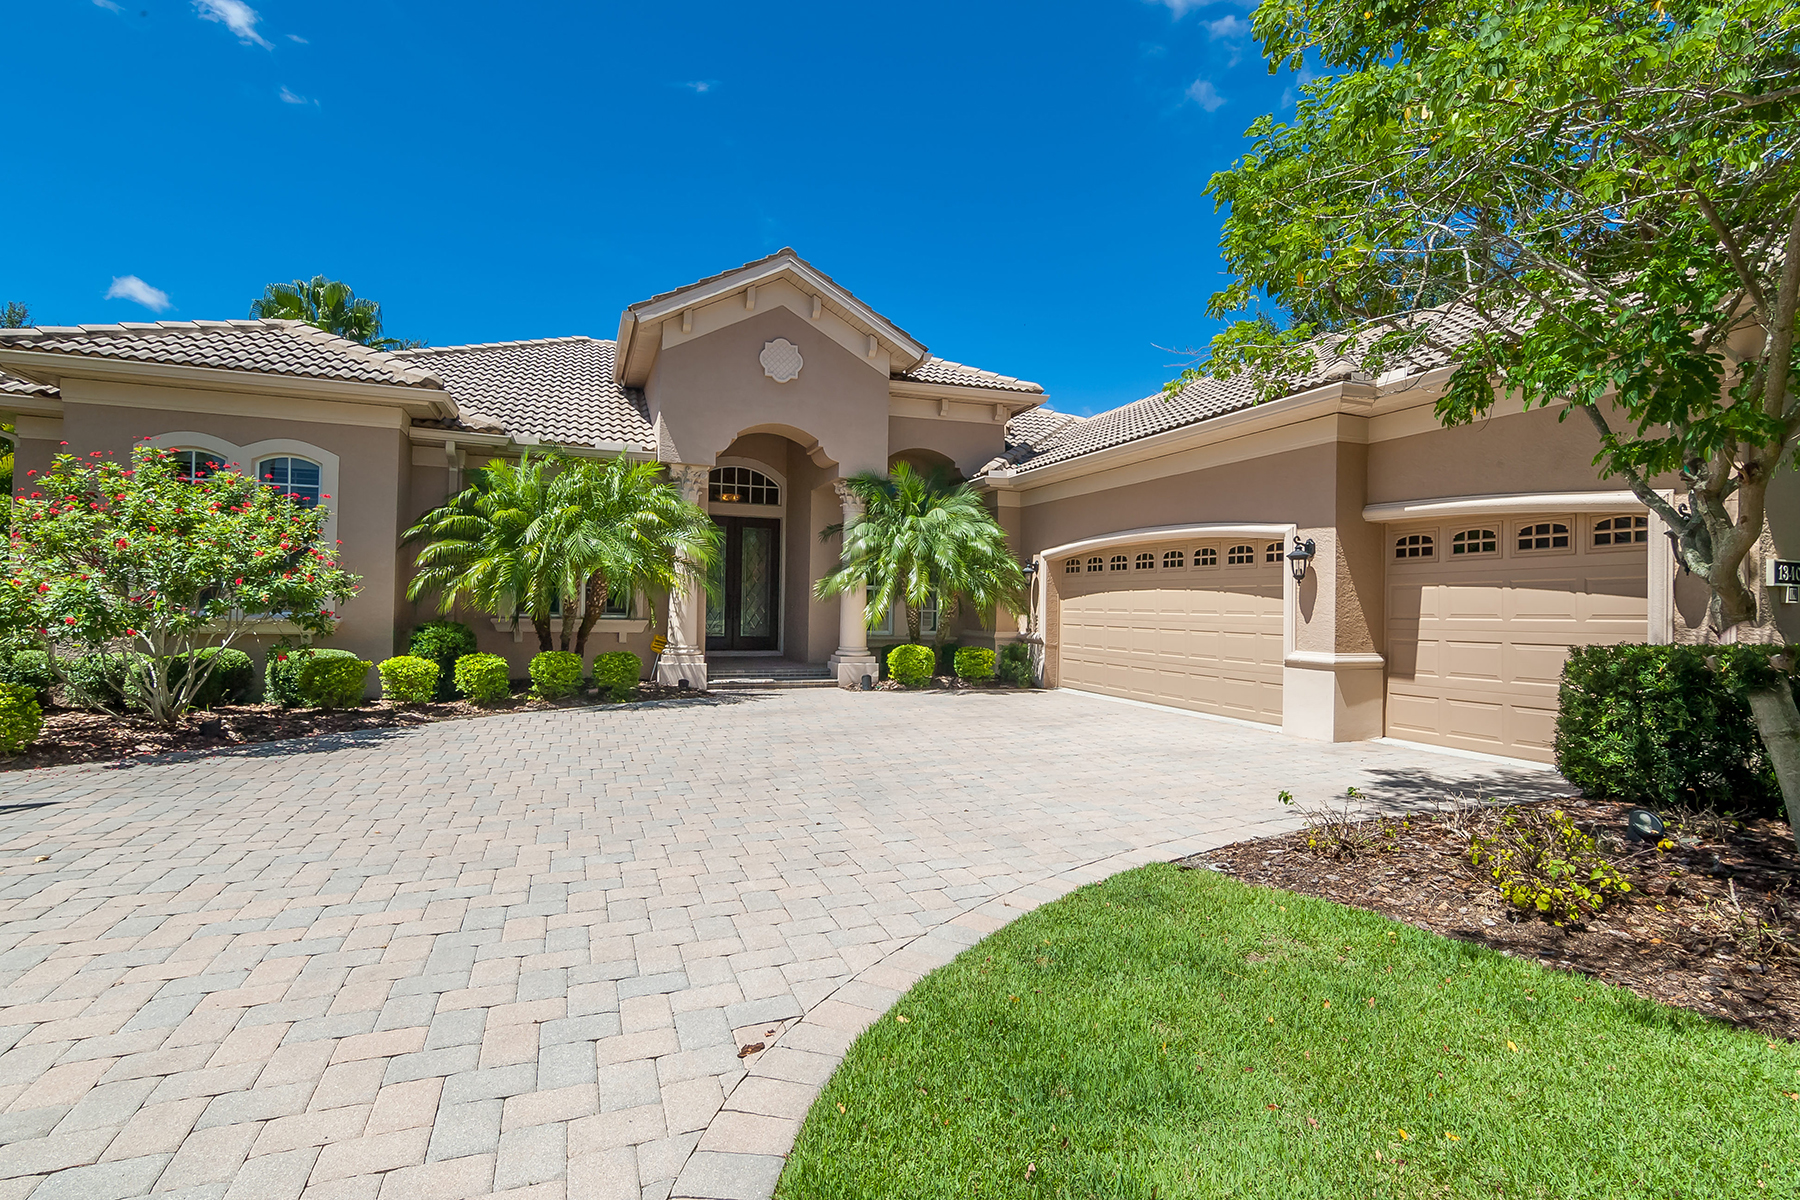 Casa Unifamiliar por un Venta en LAKEWOOD RANCH COUNTRY CLUB 13404 Kildare Pl Lakewood Ranch, Florida, 34202 Estados Unidos